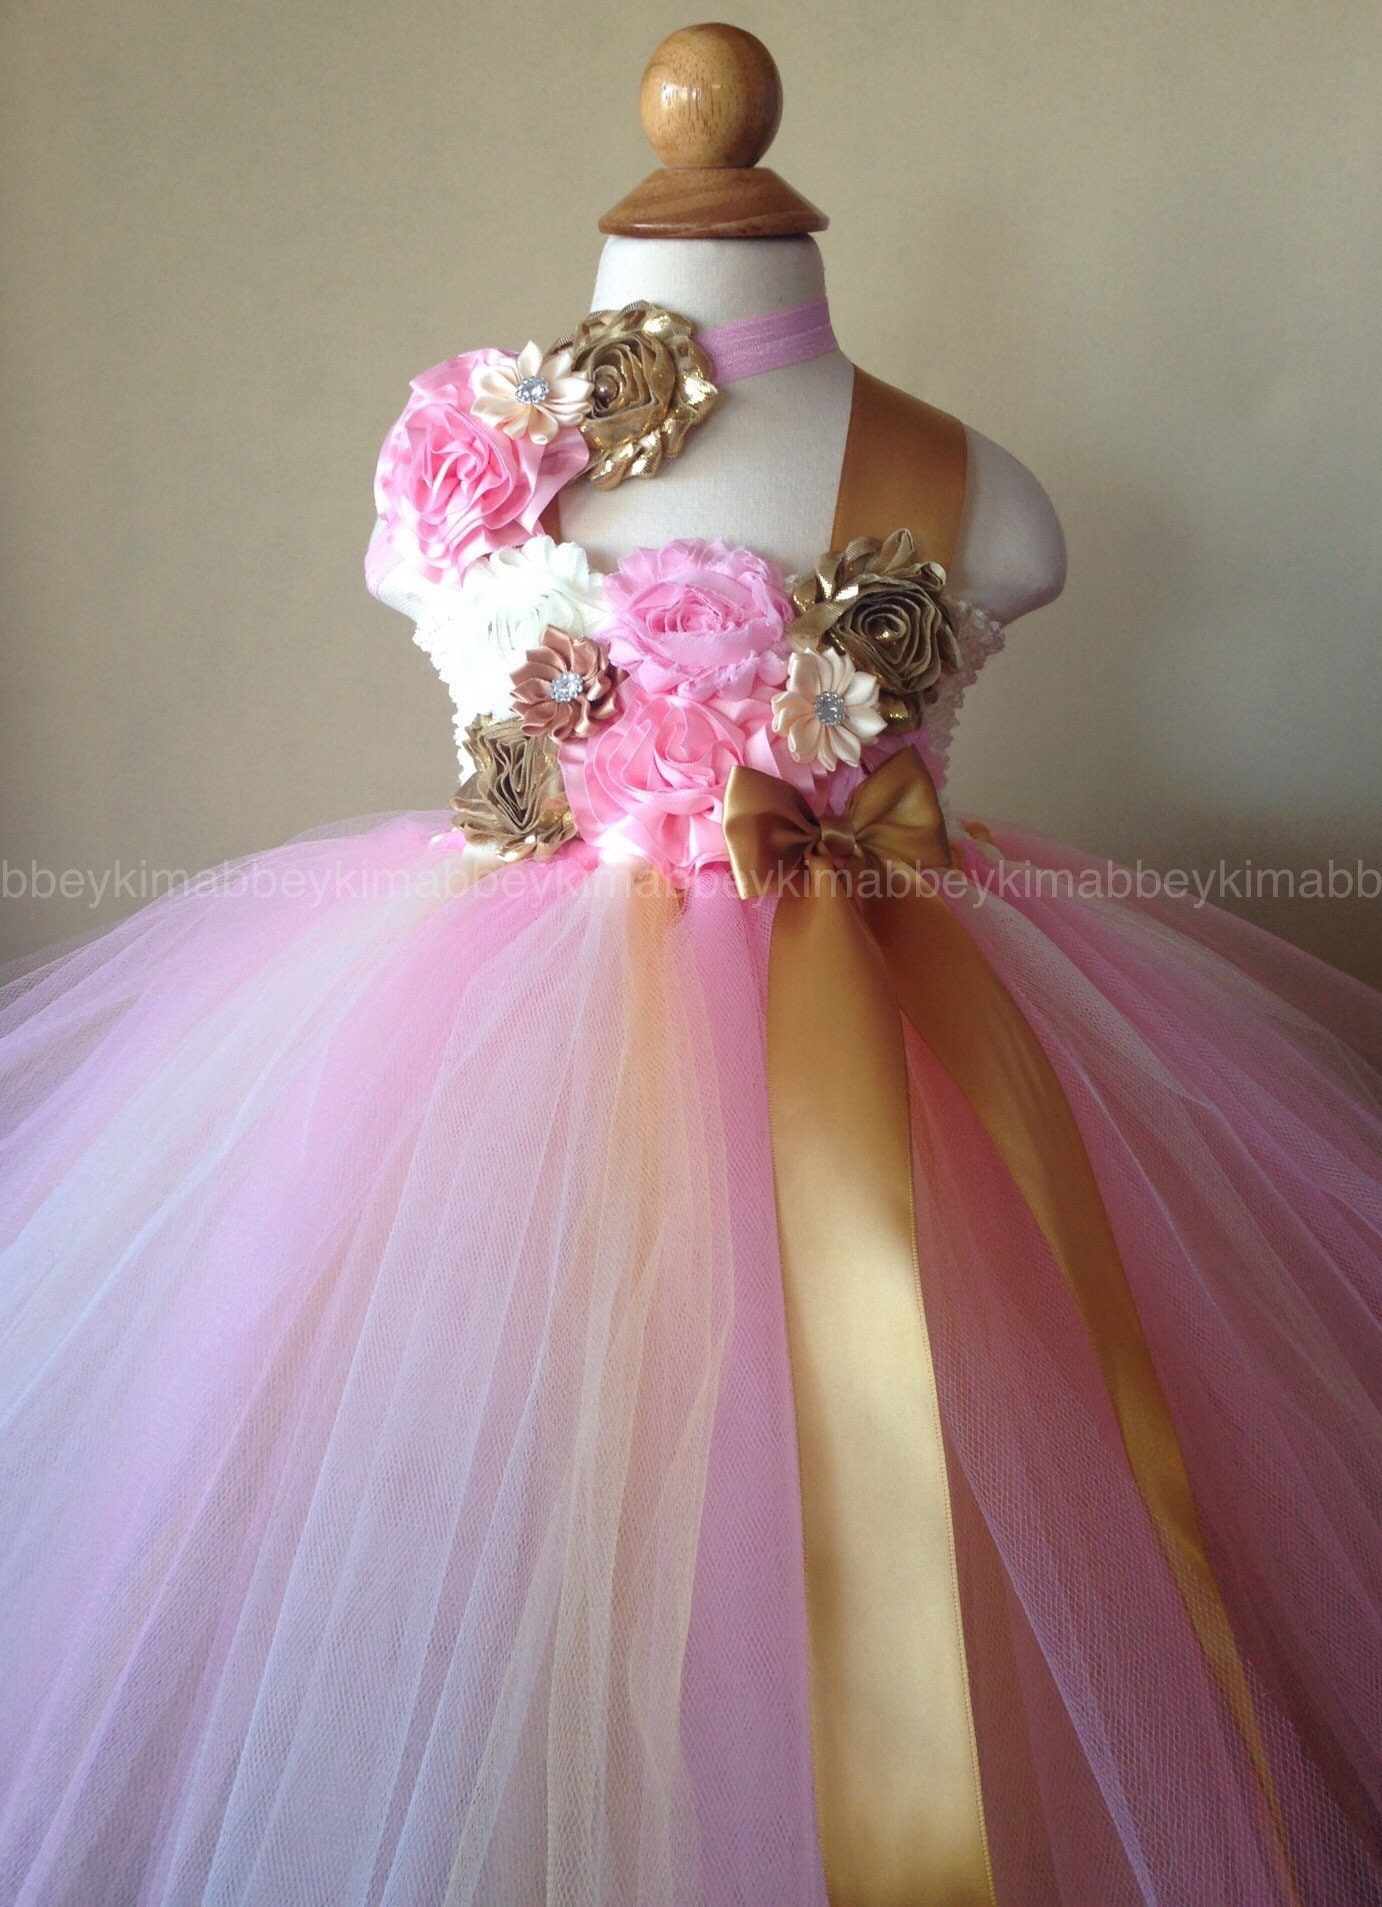 Beautiful baby girl first birthday tutu dress in pinkivory